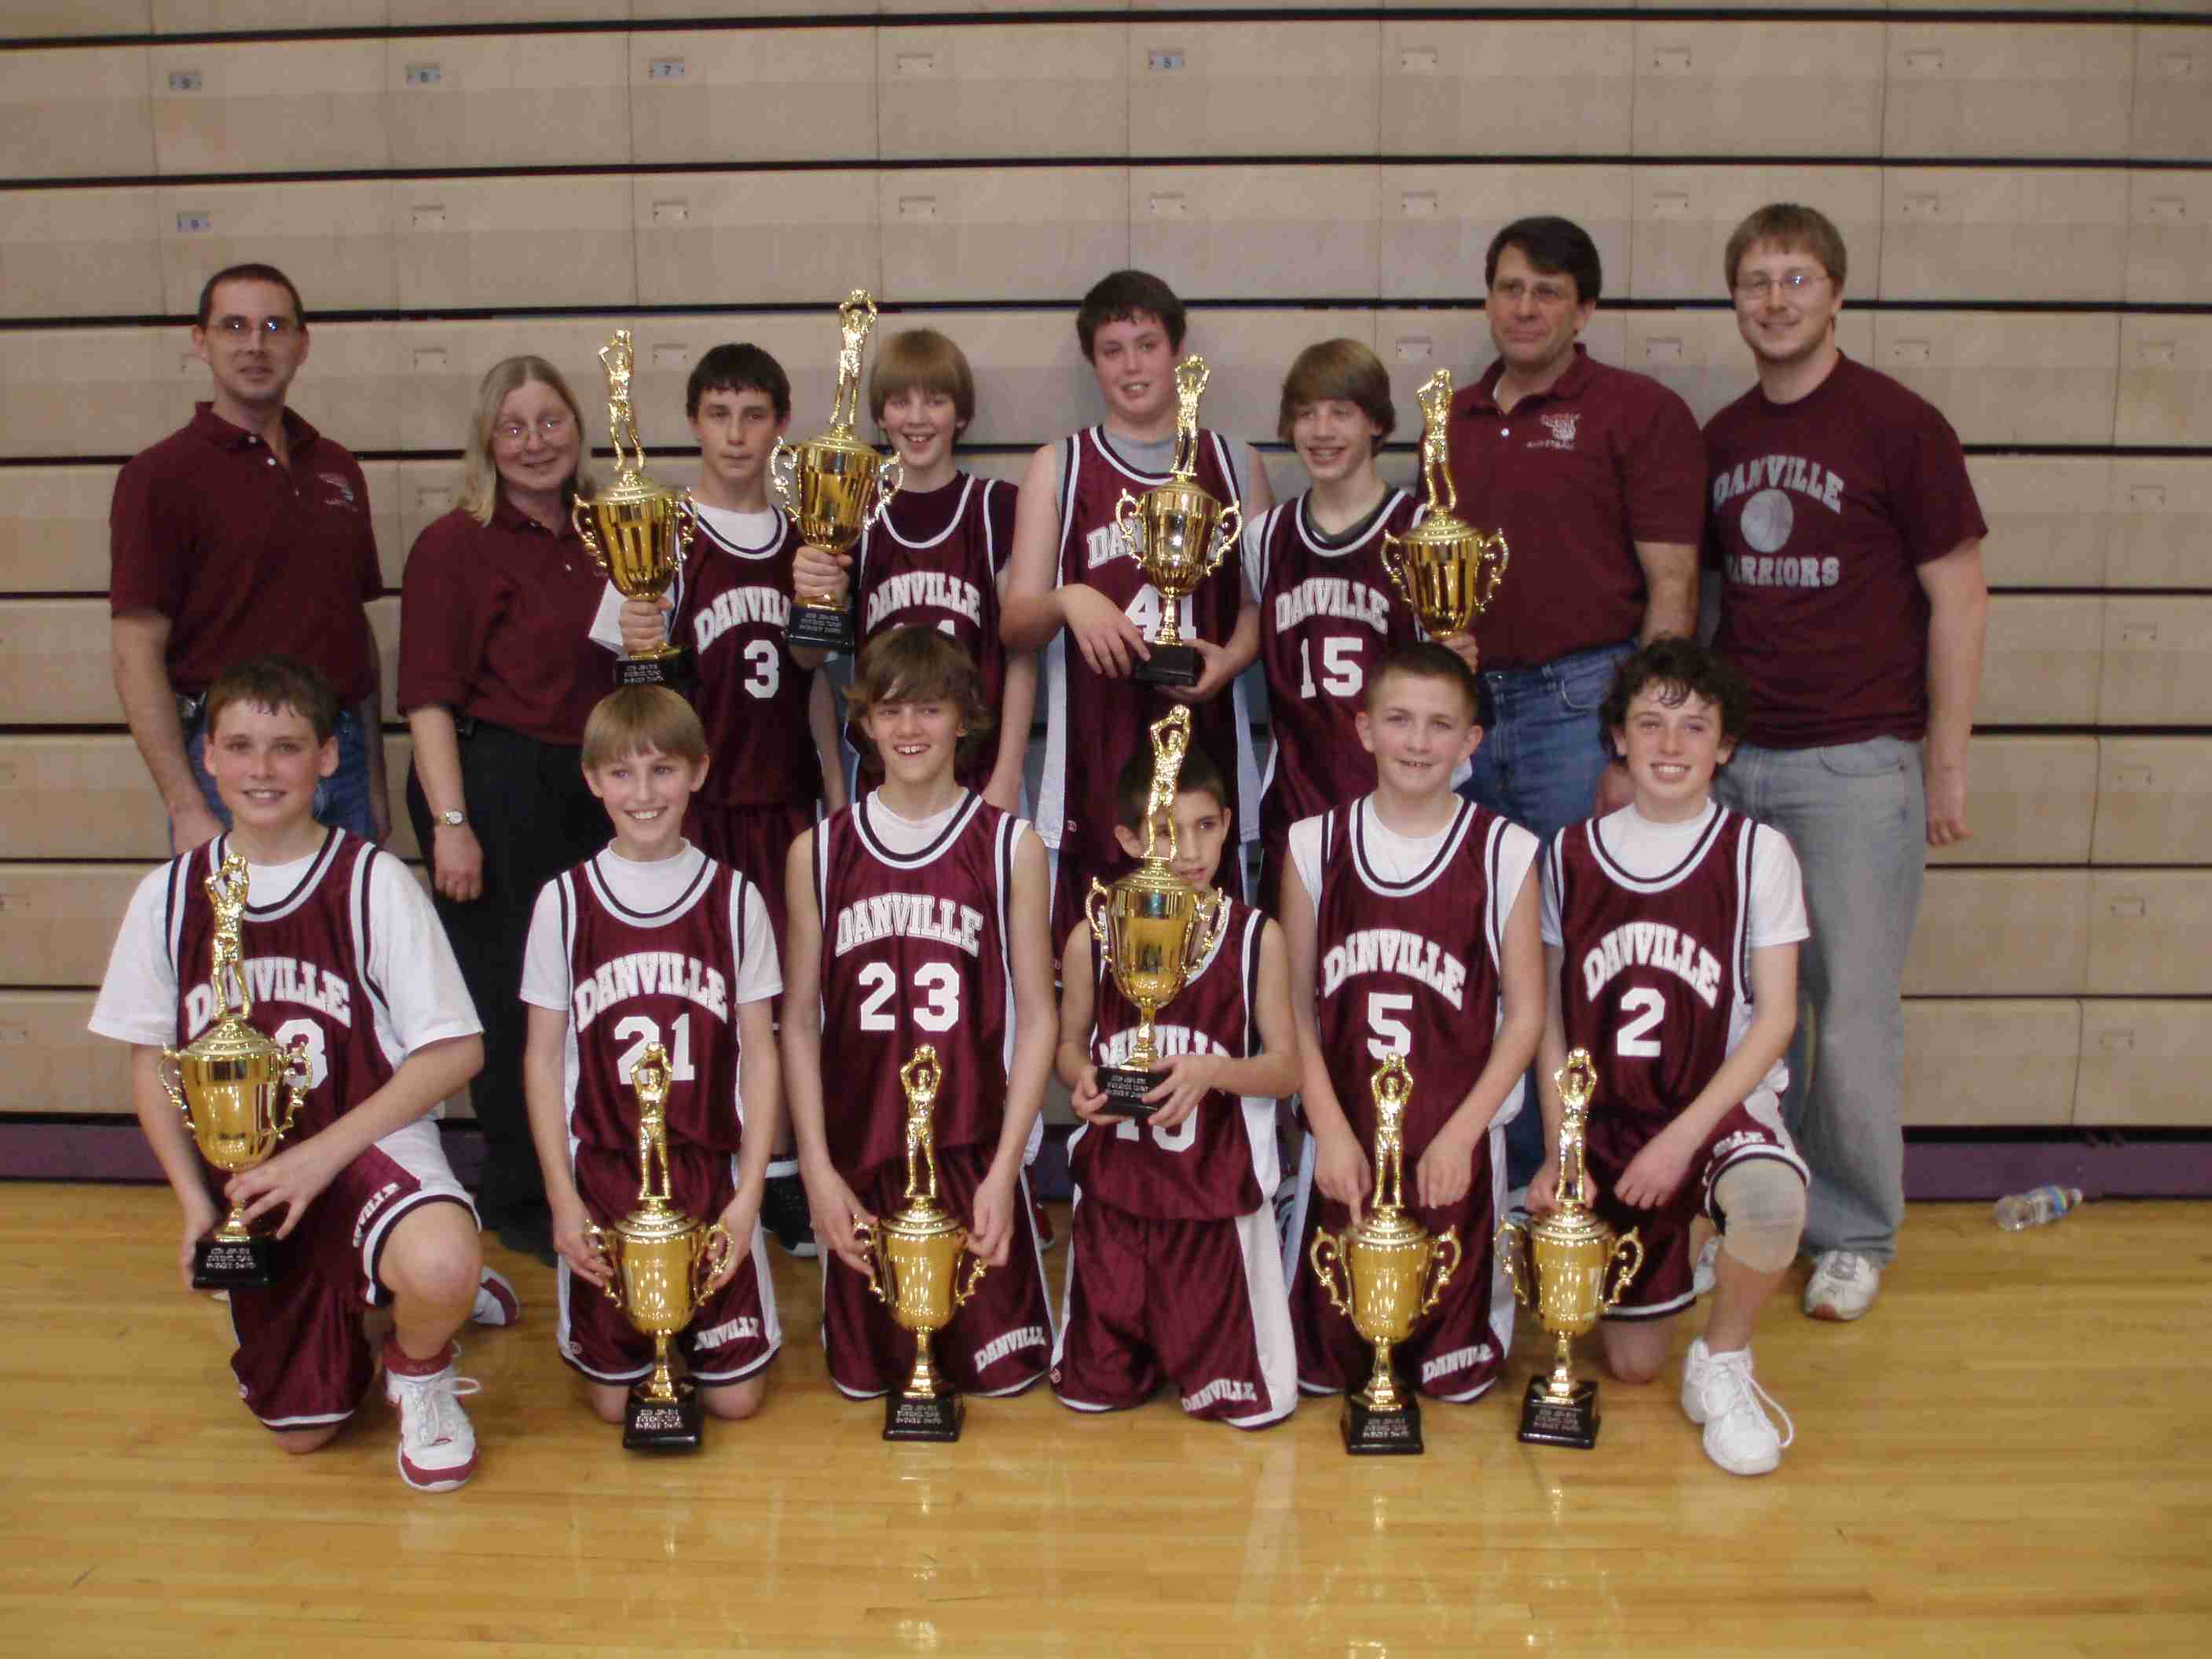 6th Grade USSFA State Champs 2008